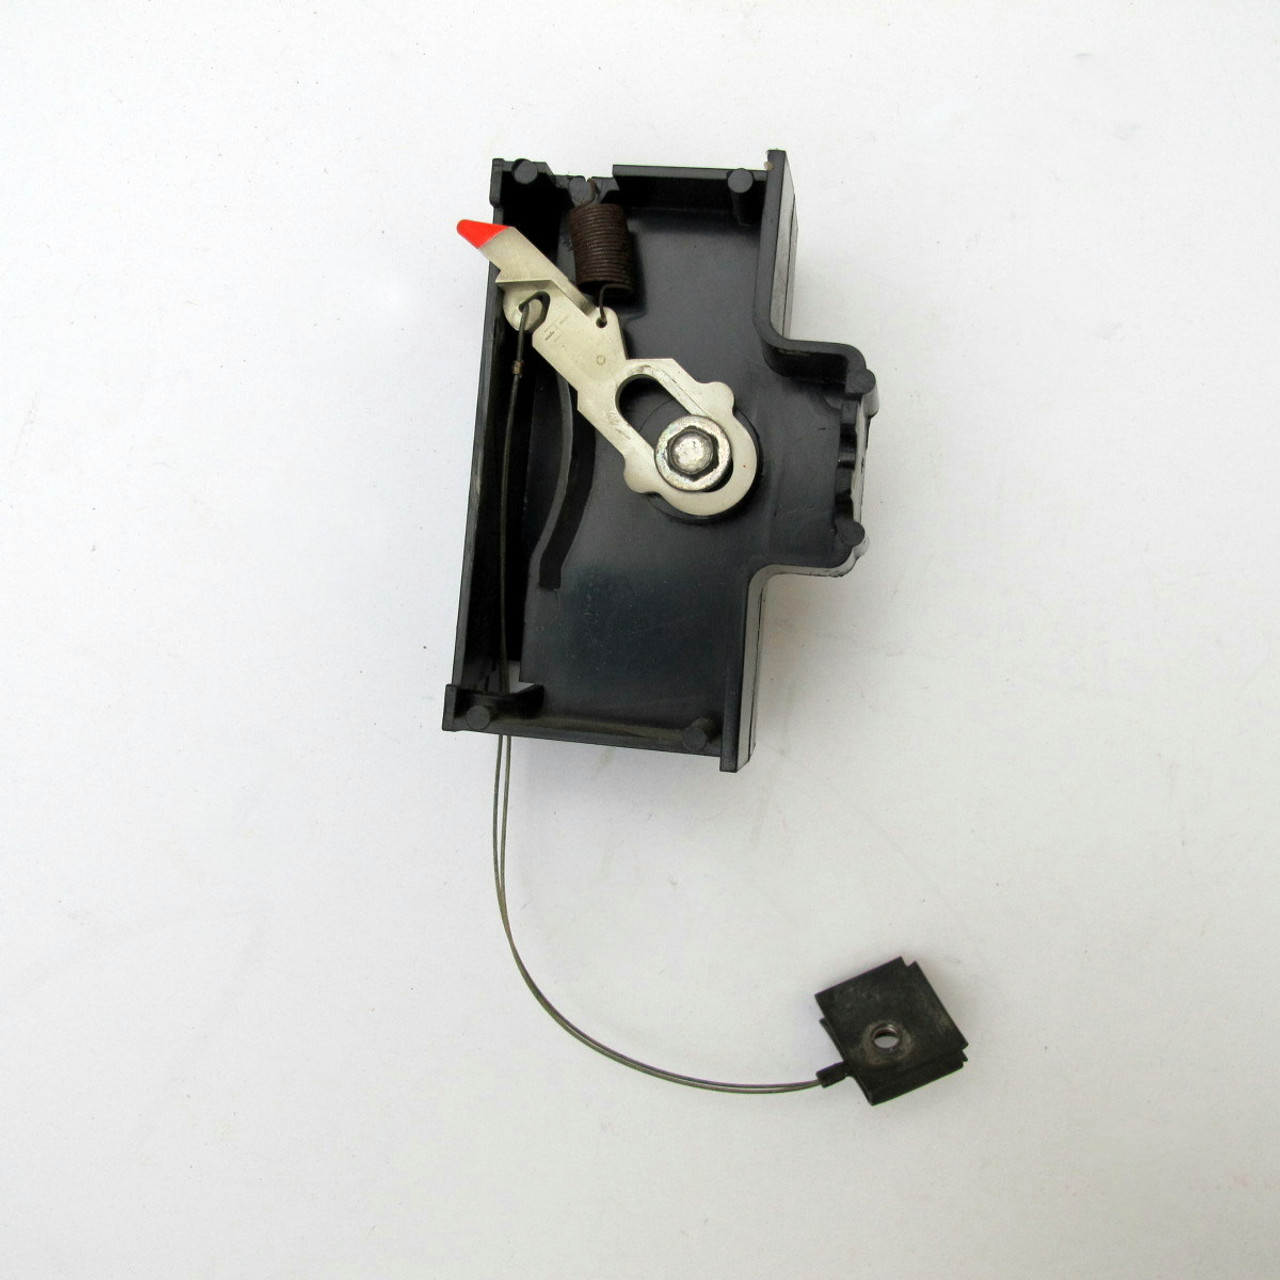 1970-78 Chevy Camaro shifter indicator